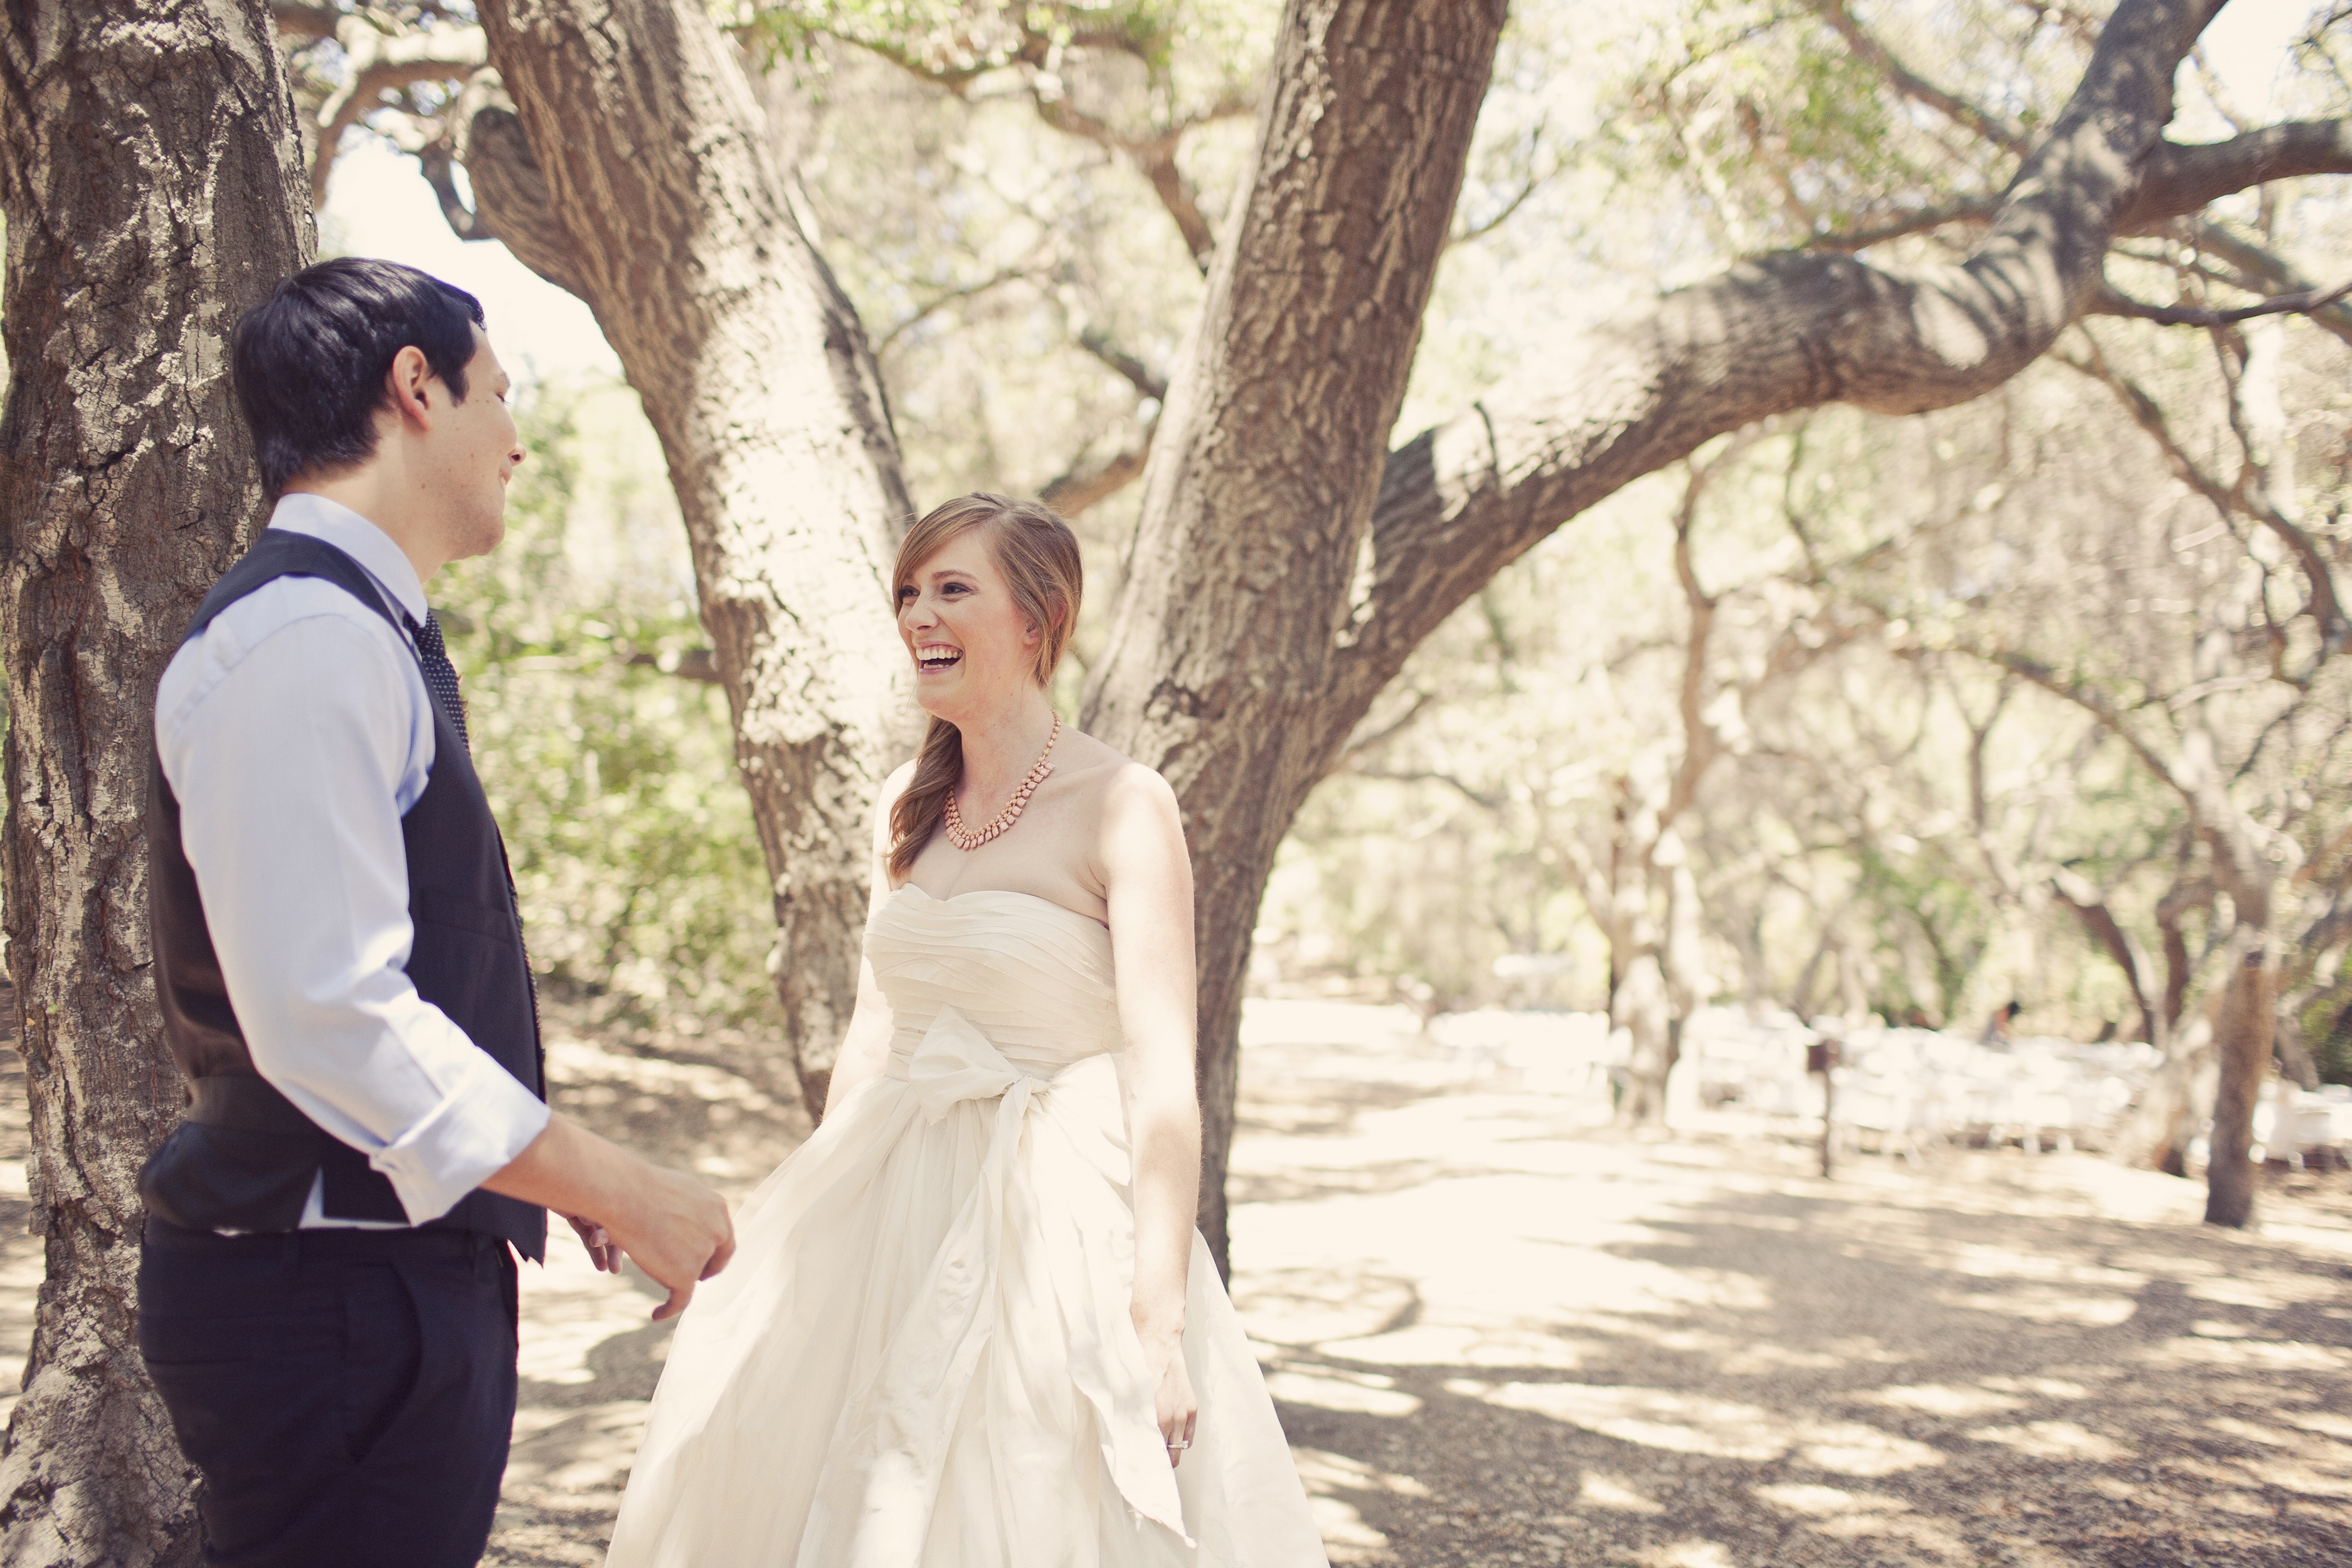 Chic Vintage Wedding Dresses : Vintage style wedding dress planning long hairstyles